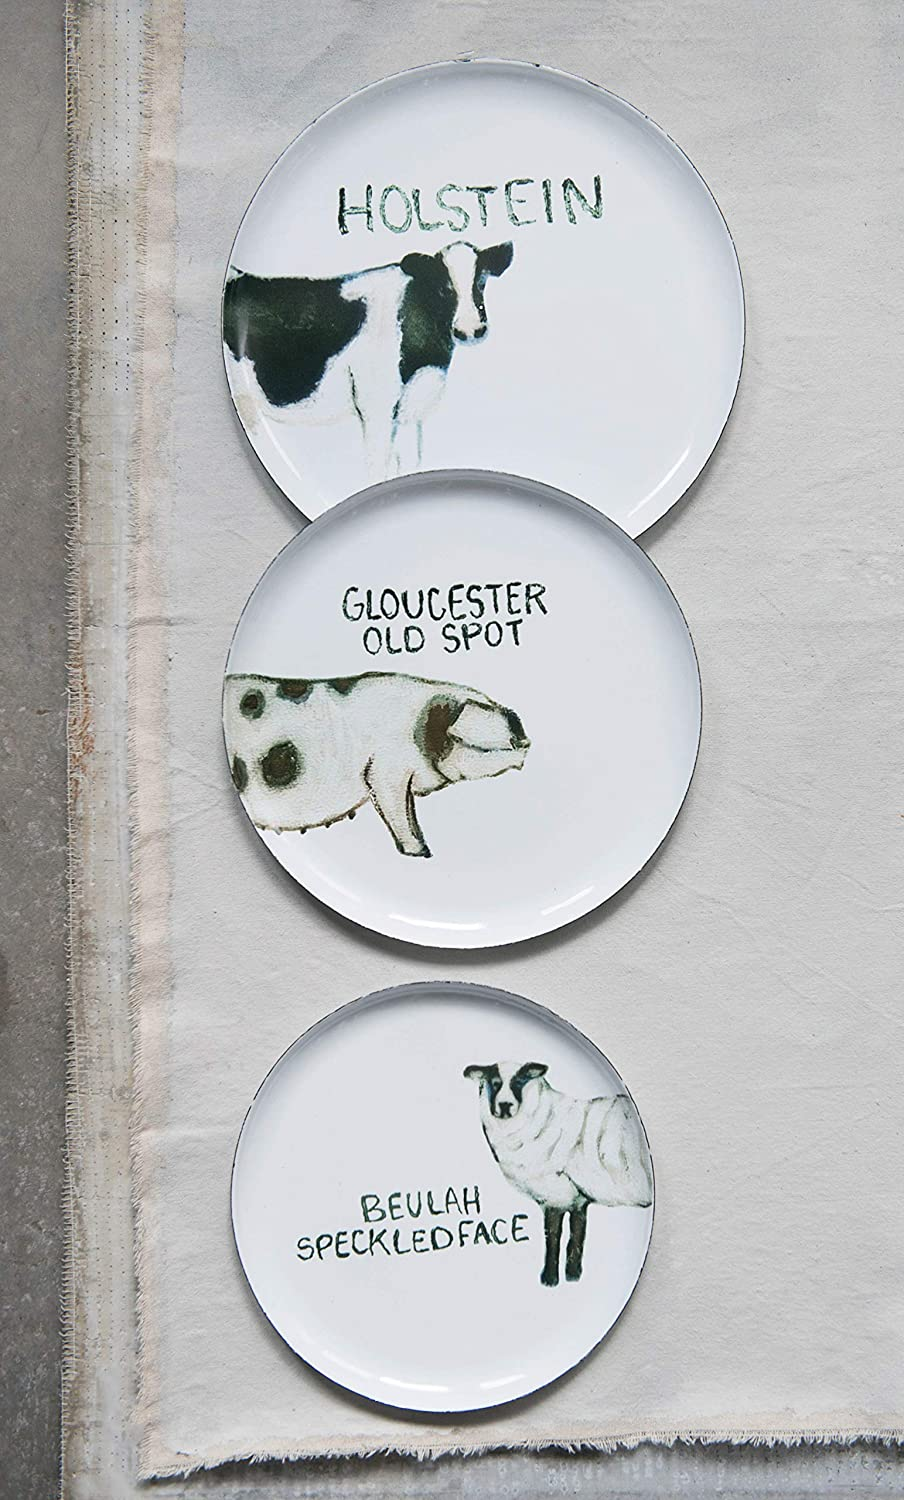 Set of 3 Sizes//Designs Creative Co-Op Round Tin Trays with Farm Animal Images